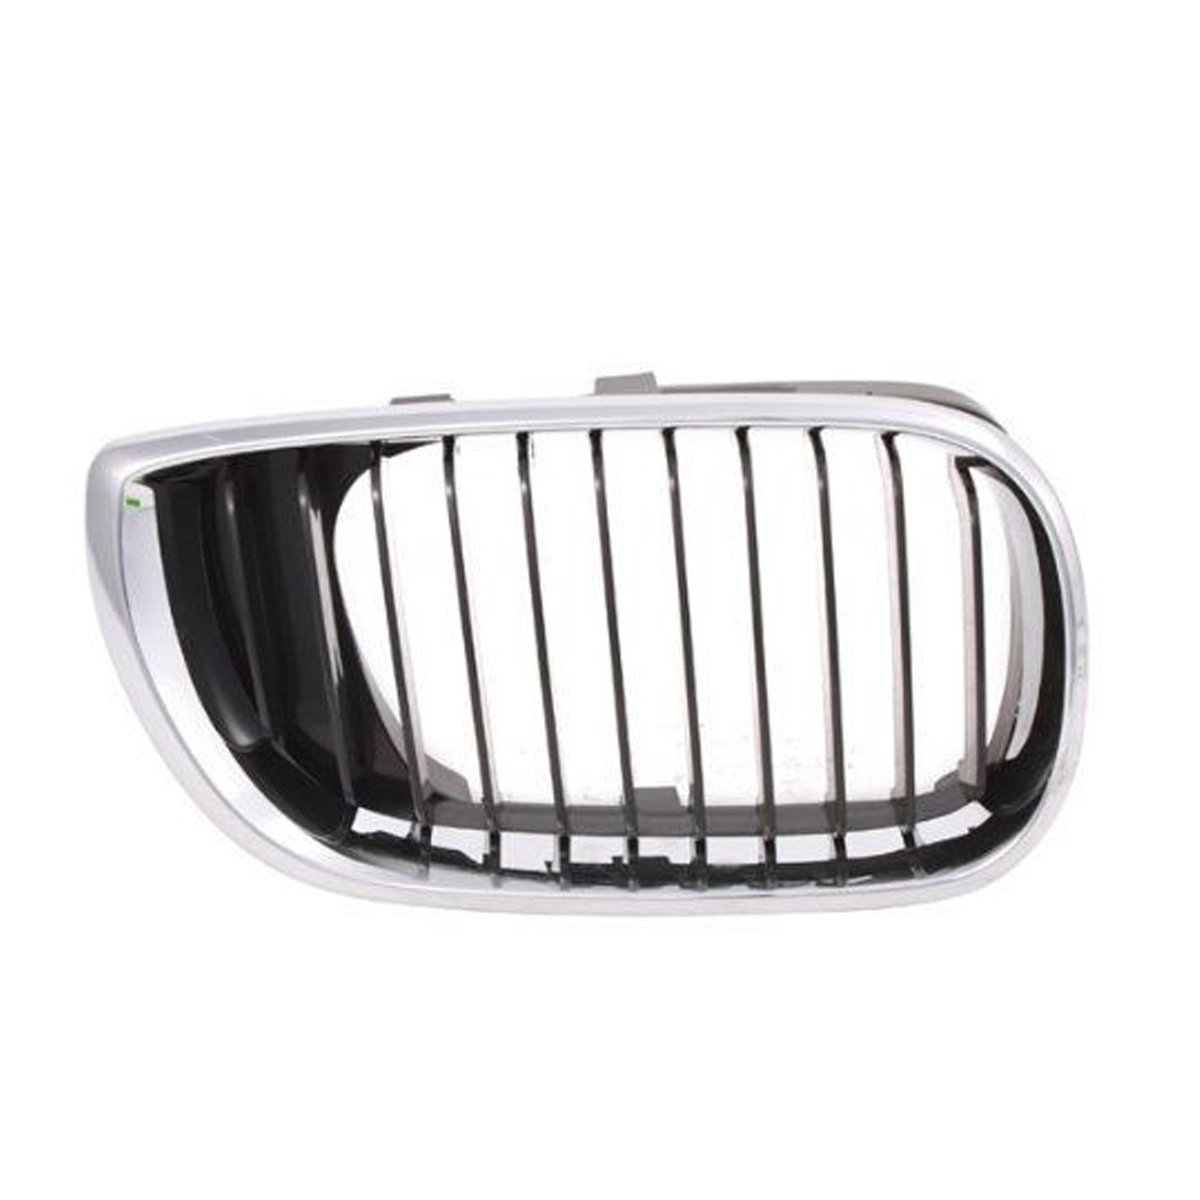 Keystone 51137030546 - BMW 3 Series Grille Chrome Black Passenger Side Hood Mounted (Partslink: BM1200127 )